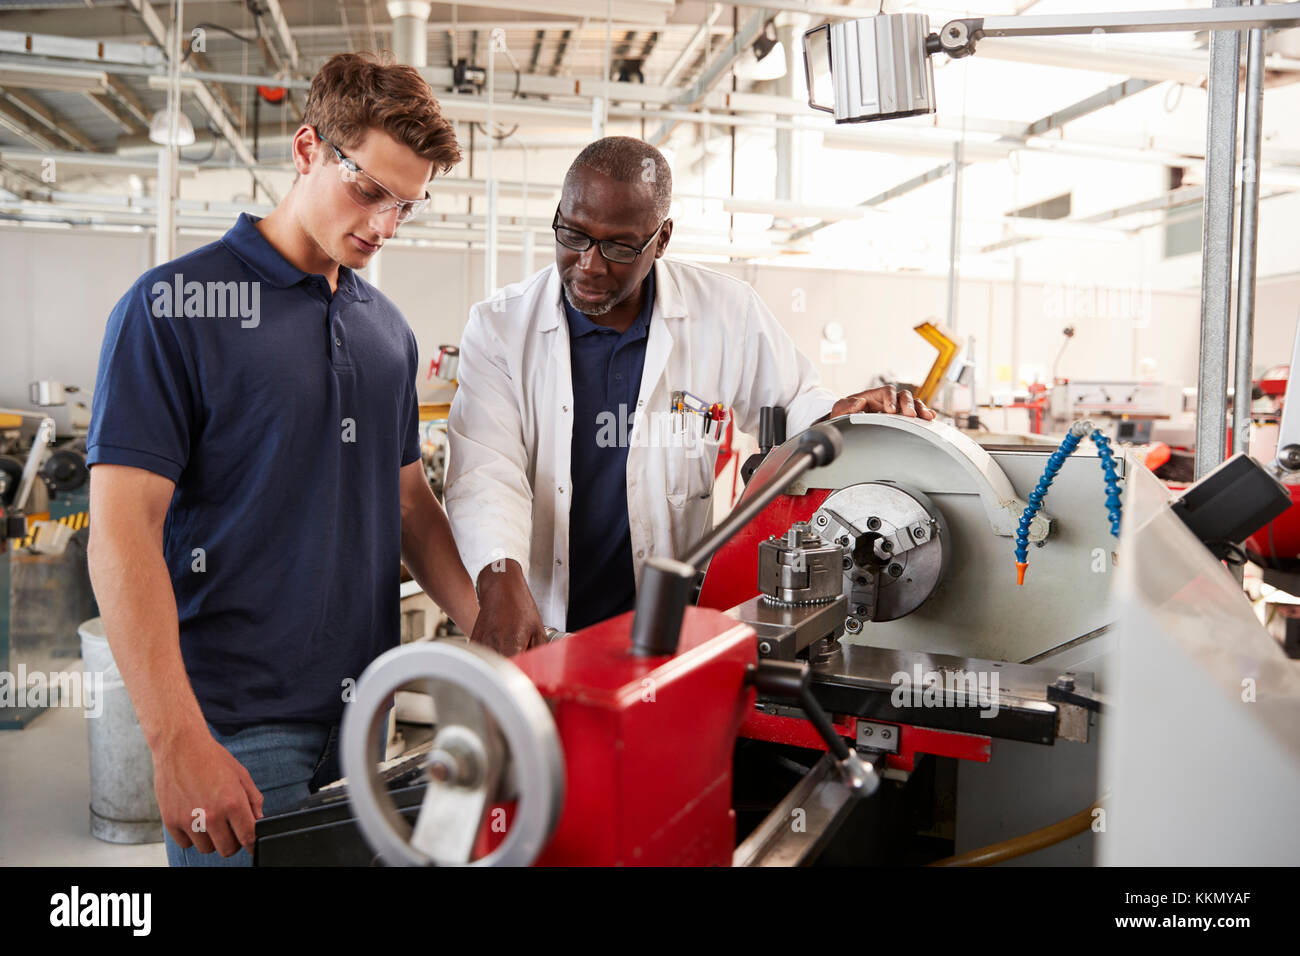 Engineer showing male apprentice how to operate machinery, close up - Stock Image